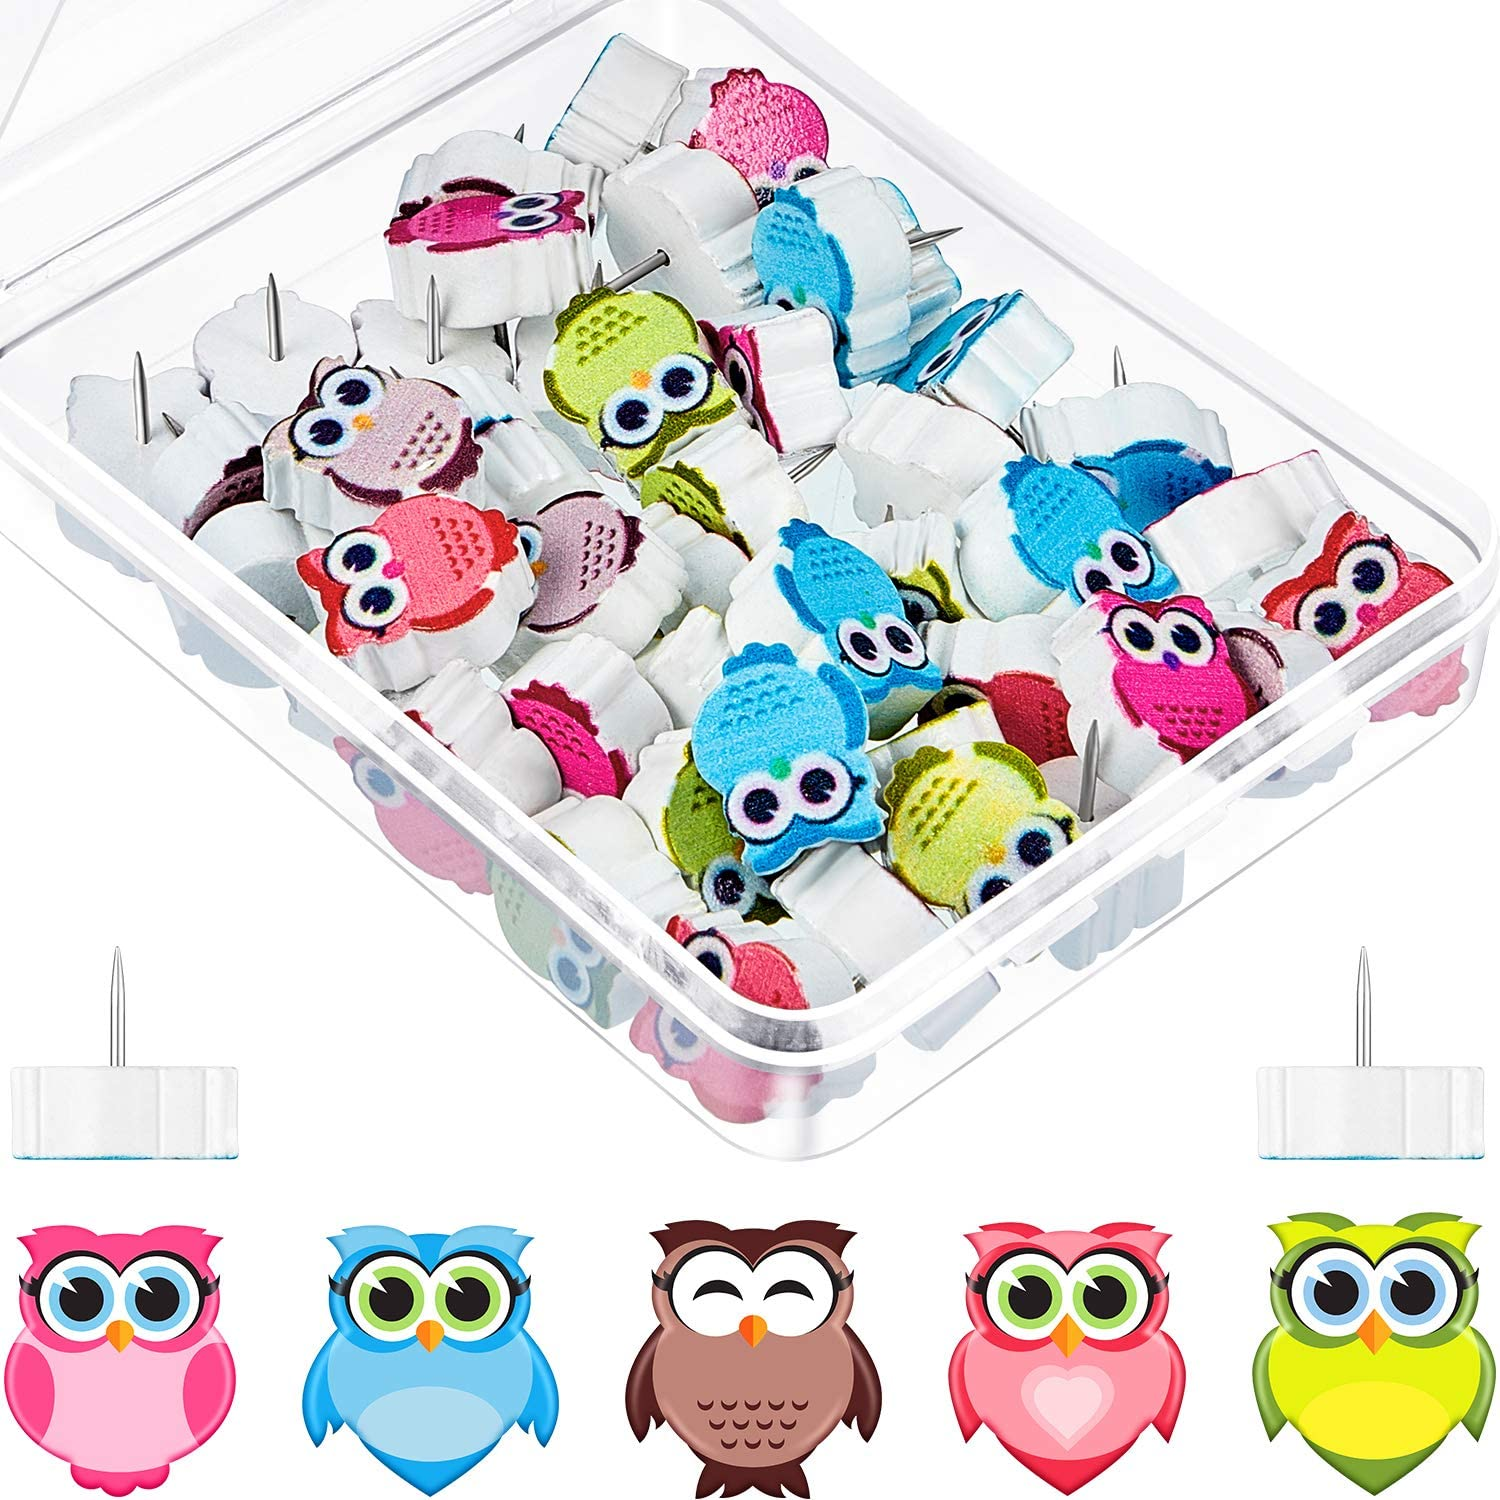 50 Pieces Owl Push Pins Decorative Owl Thumbtacks Cork Board Tacks Bulletin Board Tacks for Home or Office Whiteboard, Photo Wall Map Bulletin Board, Back to School Supplies (Assorted Color)